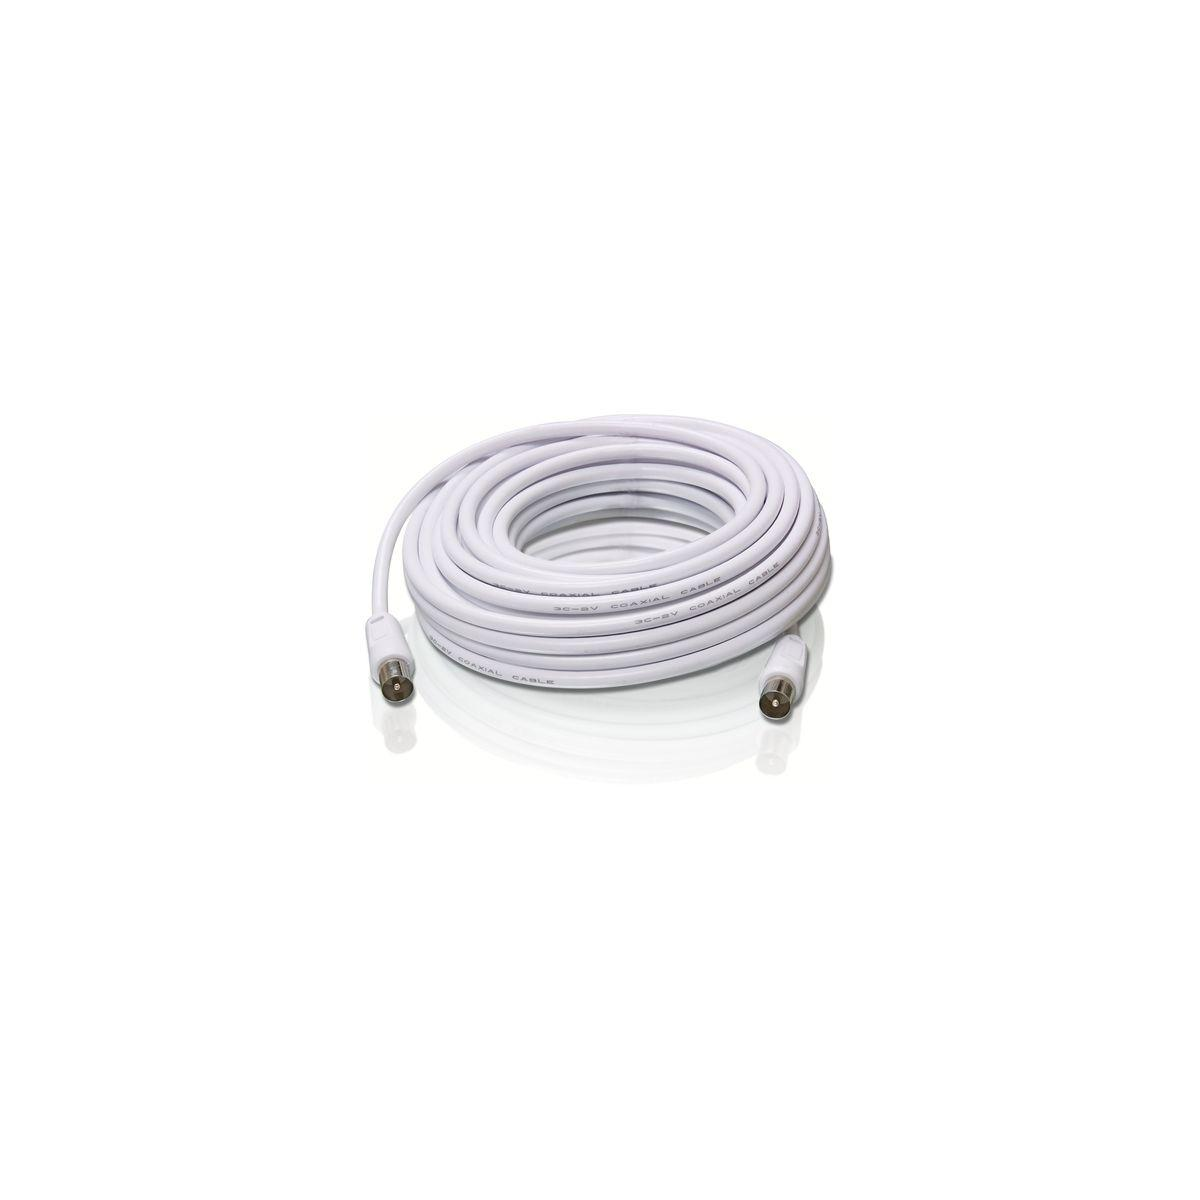 C�ble coaxial philips 10m blanc mm (f-f adaptateur inclus) (photo)